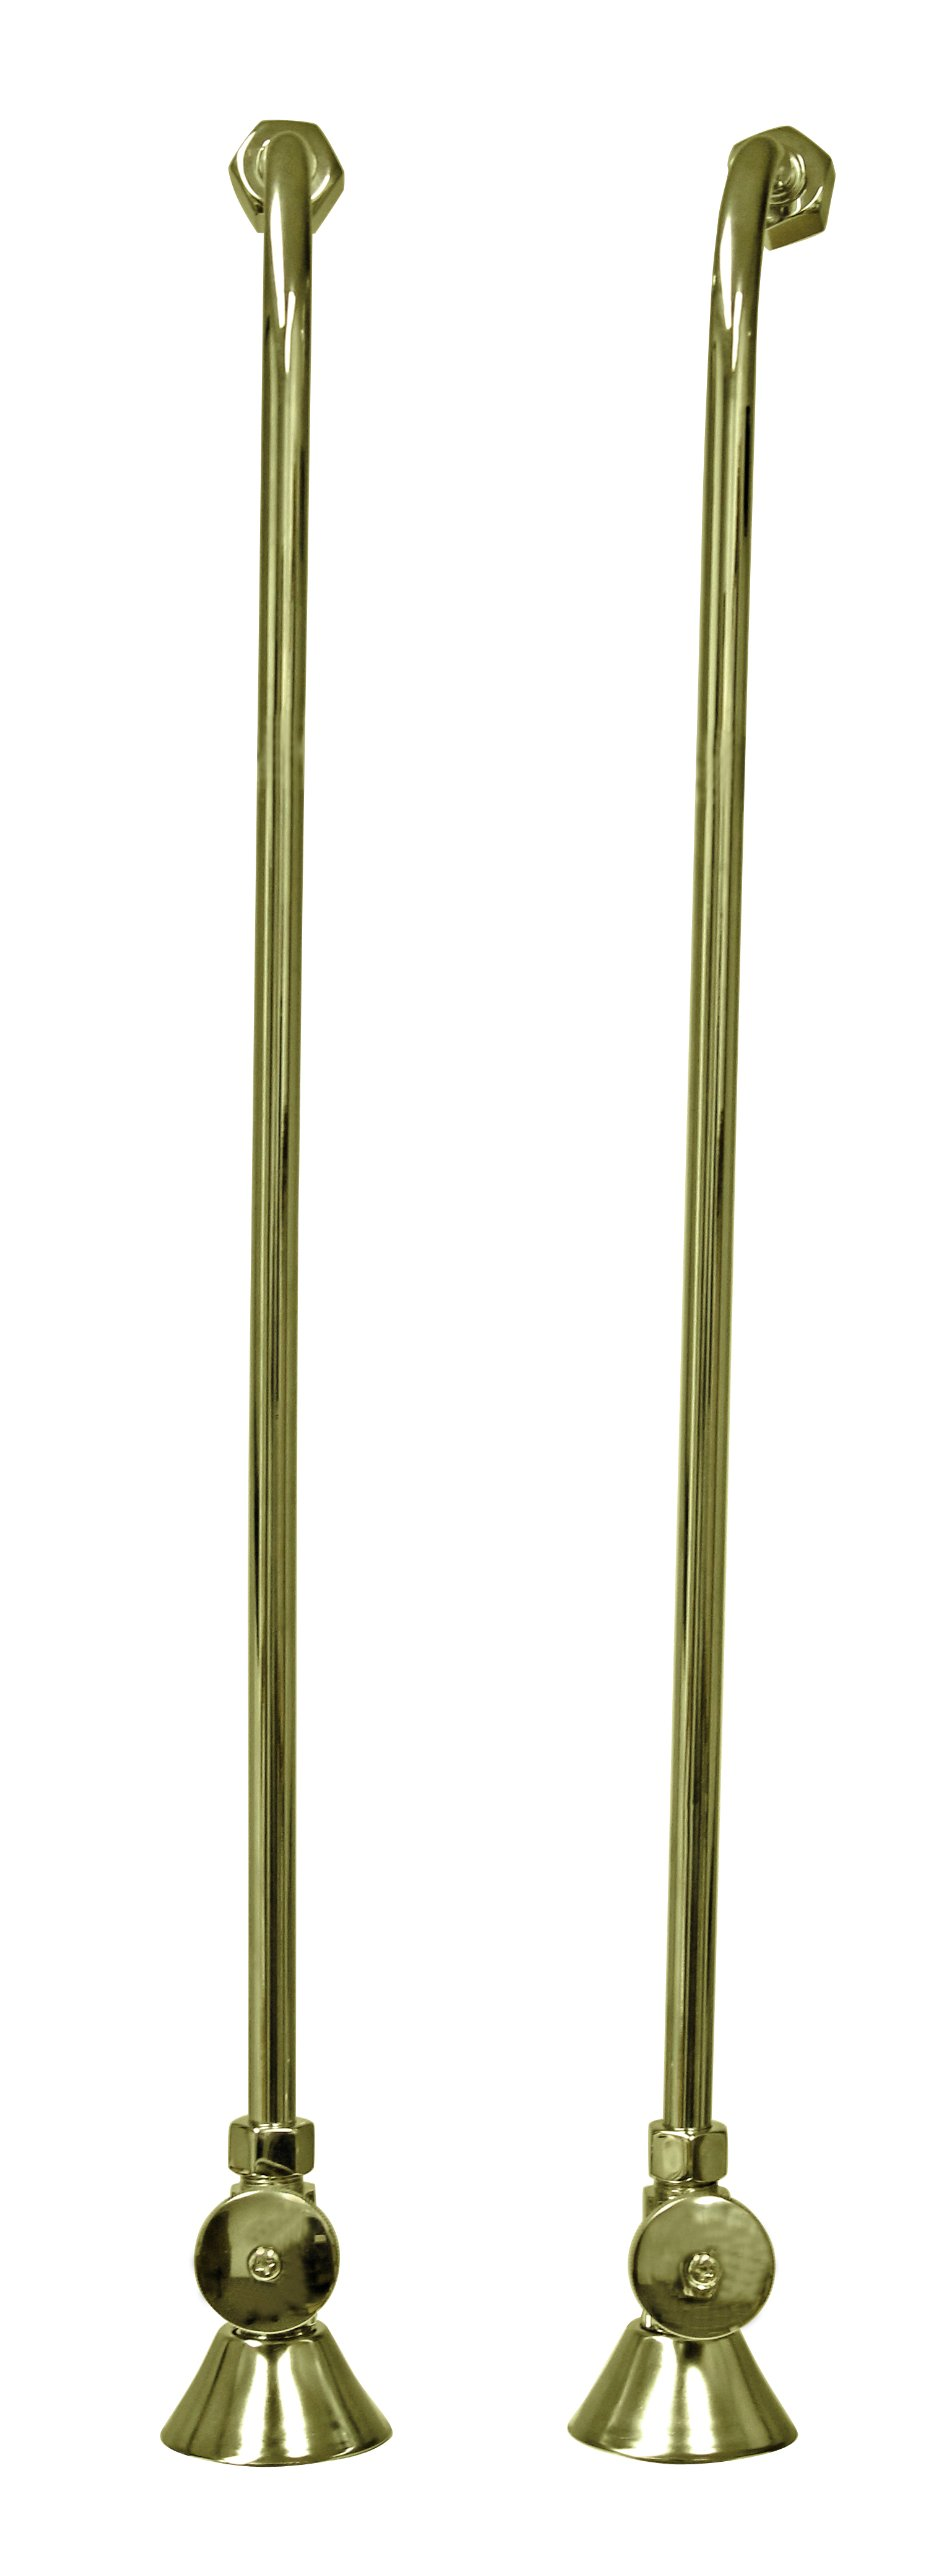 Westbrass 1/2'' IPS Stops & Single Offset Bath Supply with Round Handles, Polished Brass, D135-108-01 by Westbrass (Image #3)